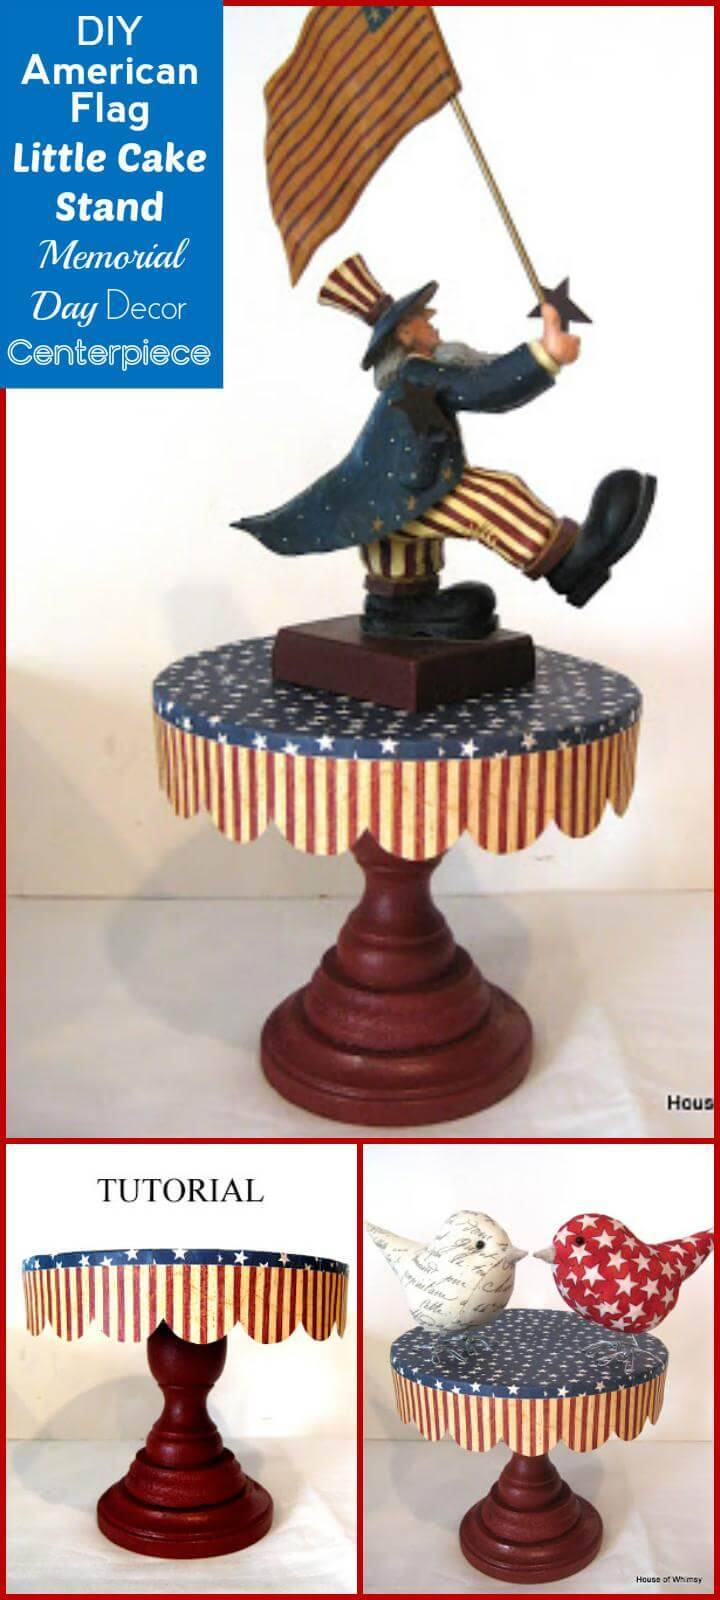 DIY Beautiful American Little Cake Stand